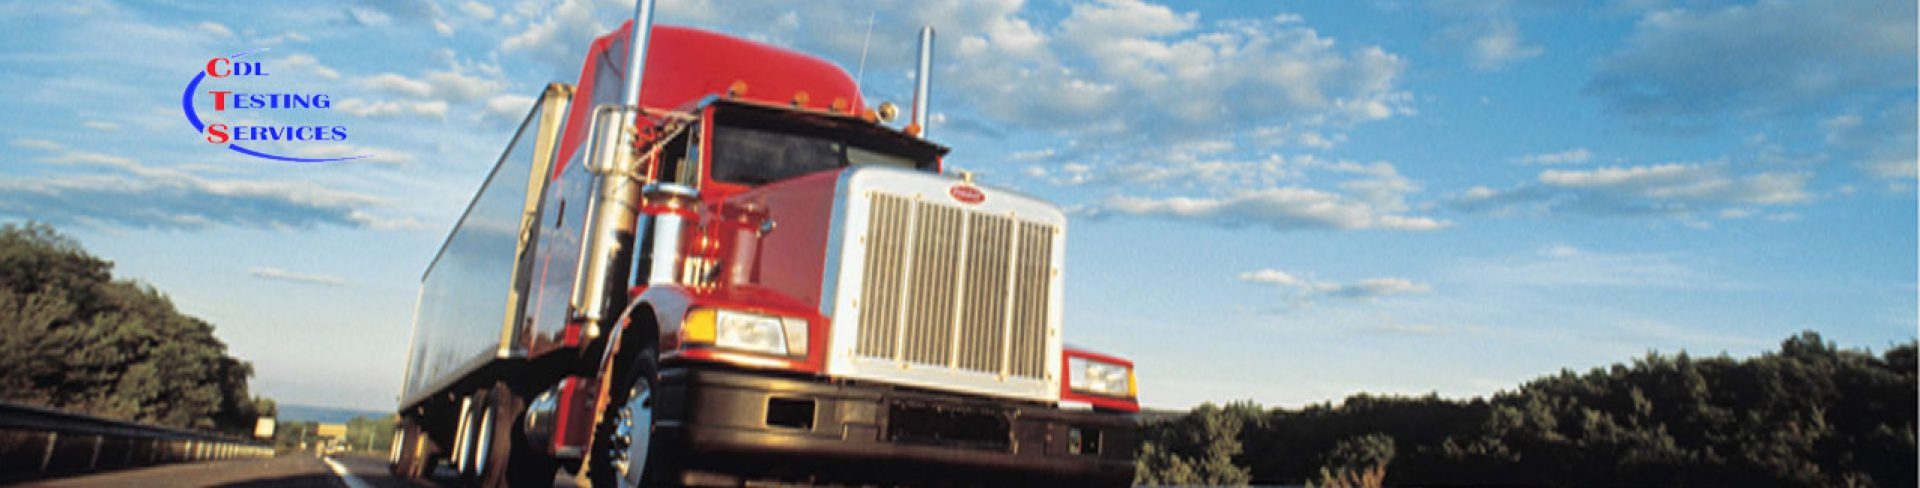 CDL Testing Services